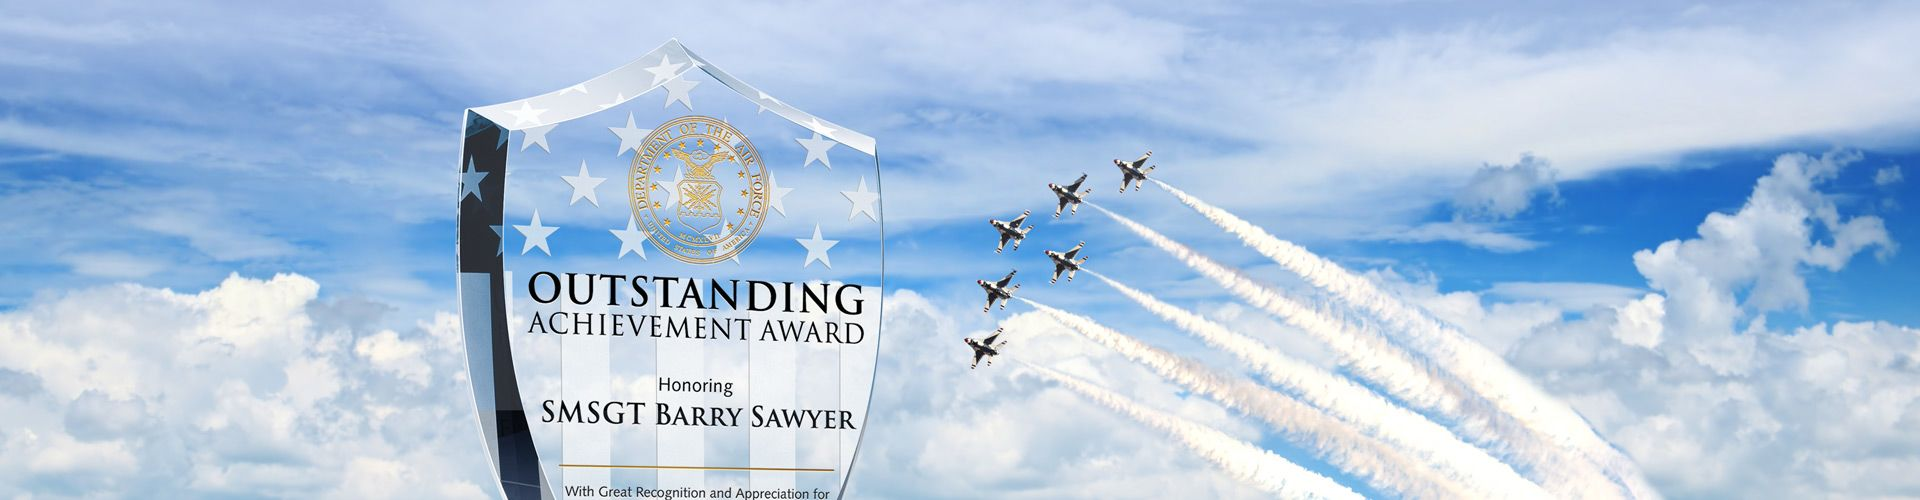 Personalized Award Plaques for Air Force Veterans & Members - Banner 1